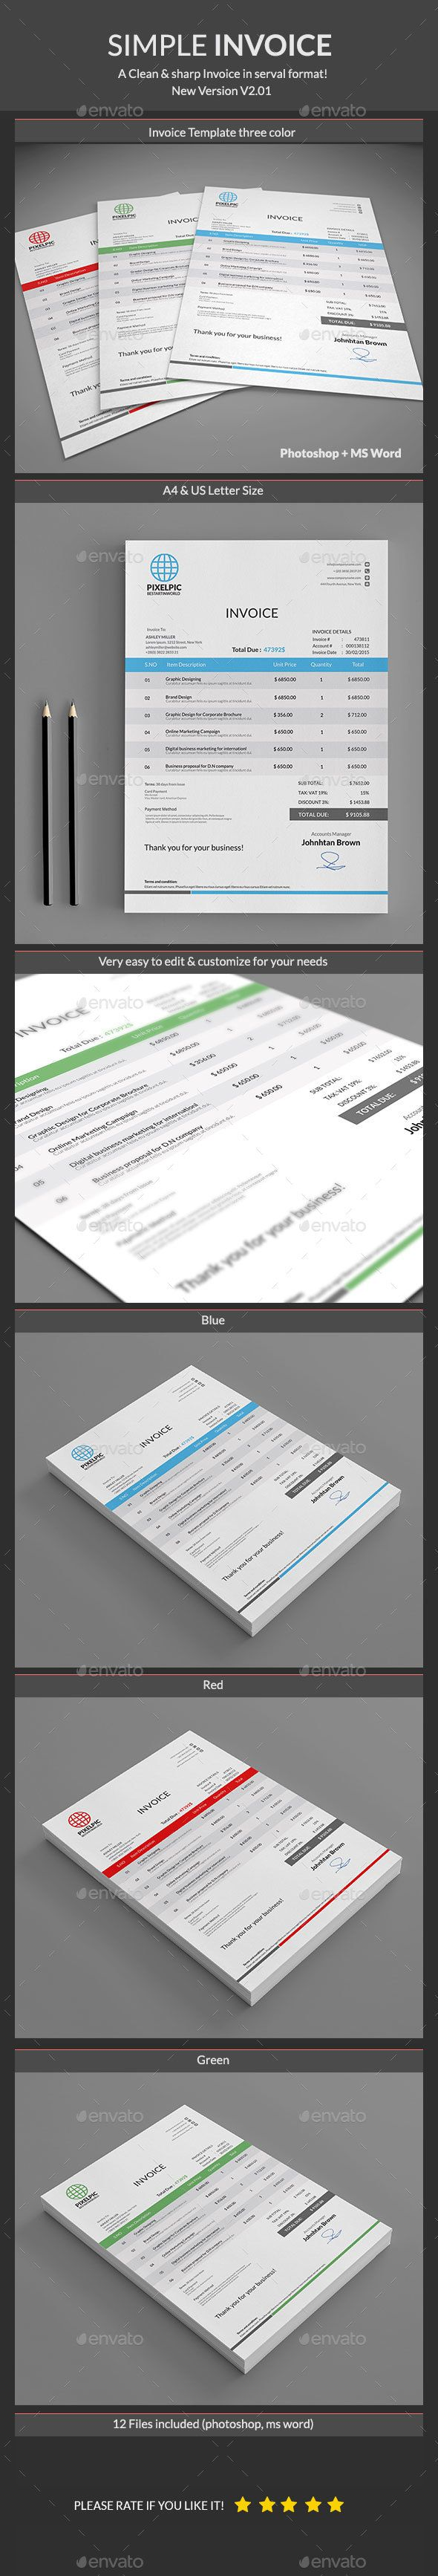 Invoice Template PSD Download here httpgraphicrivernetitem 72